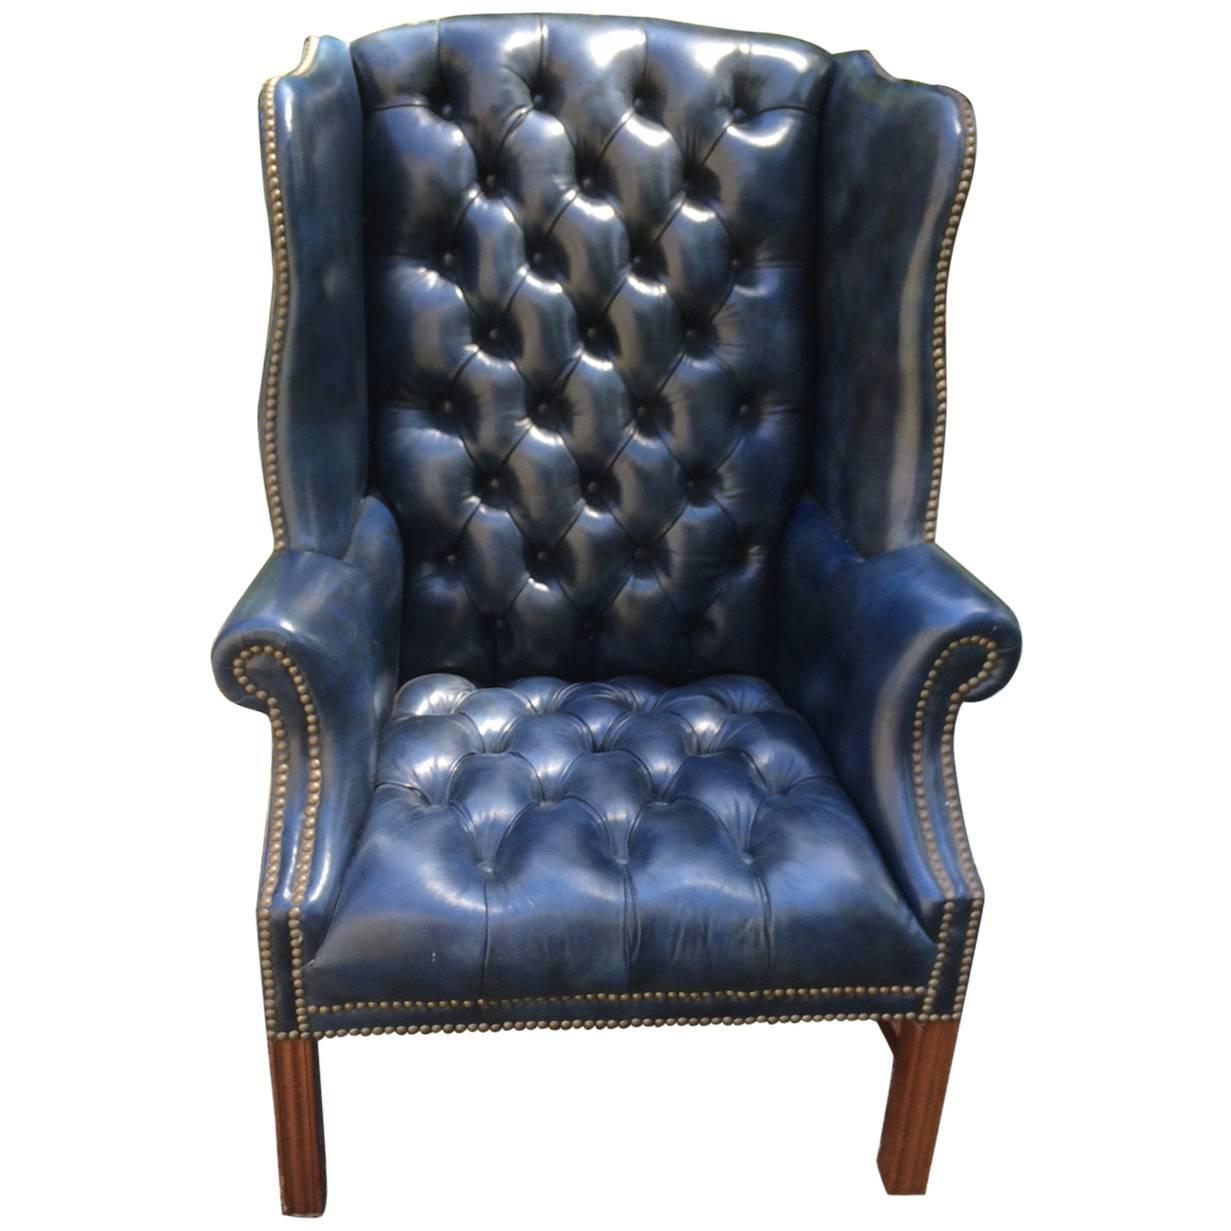 Leather Wingback Chair For Sale Fabulous Navy Blue Leather Tufted Wing Chair At 1stdibs